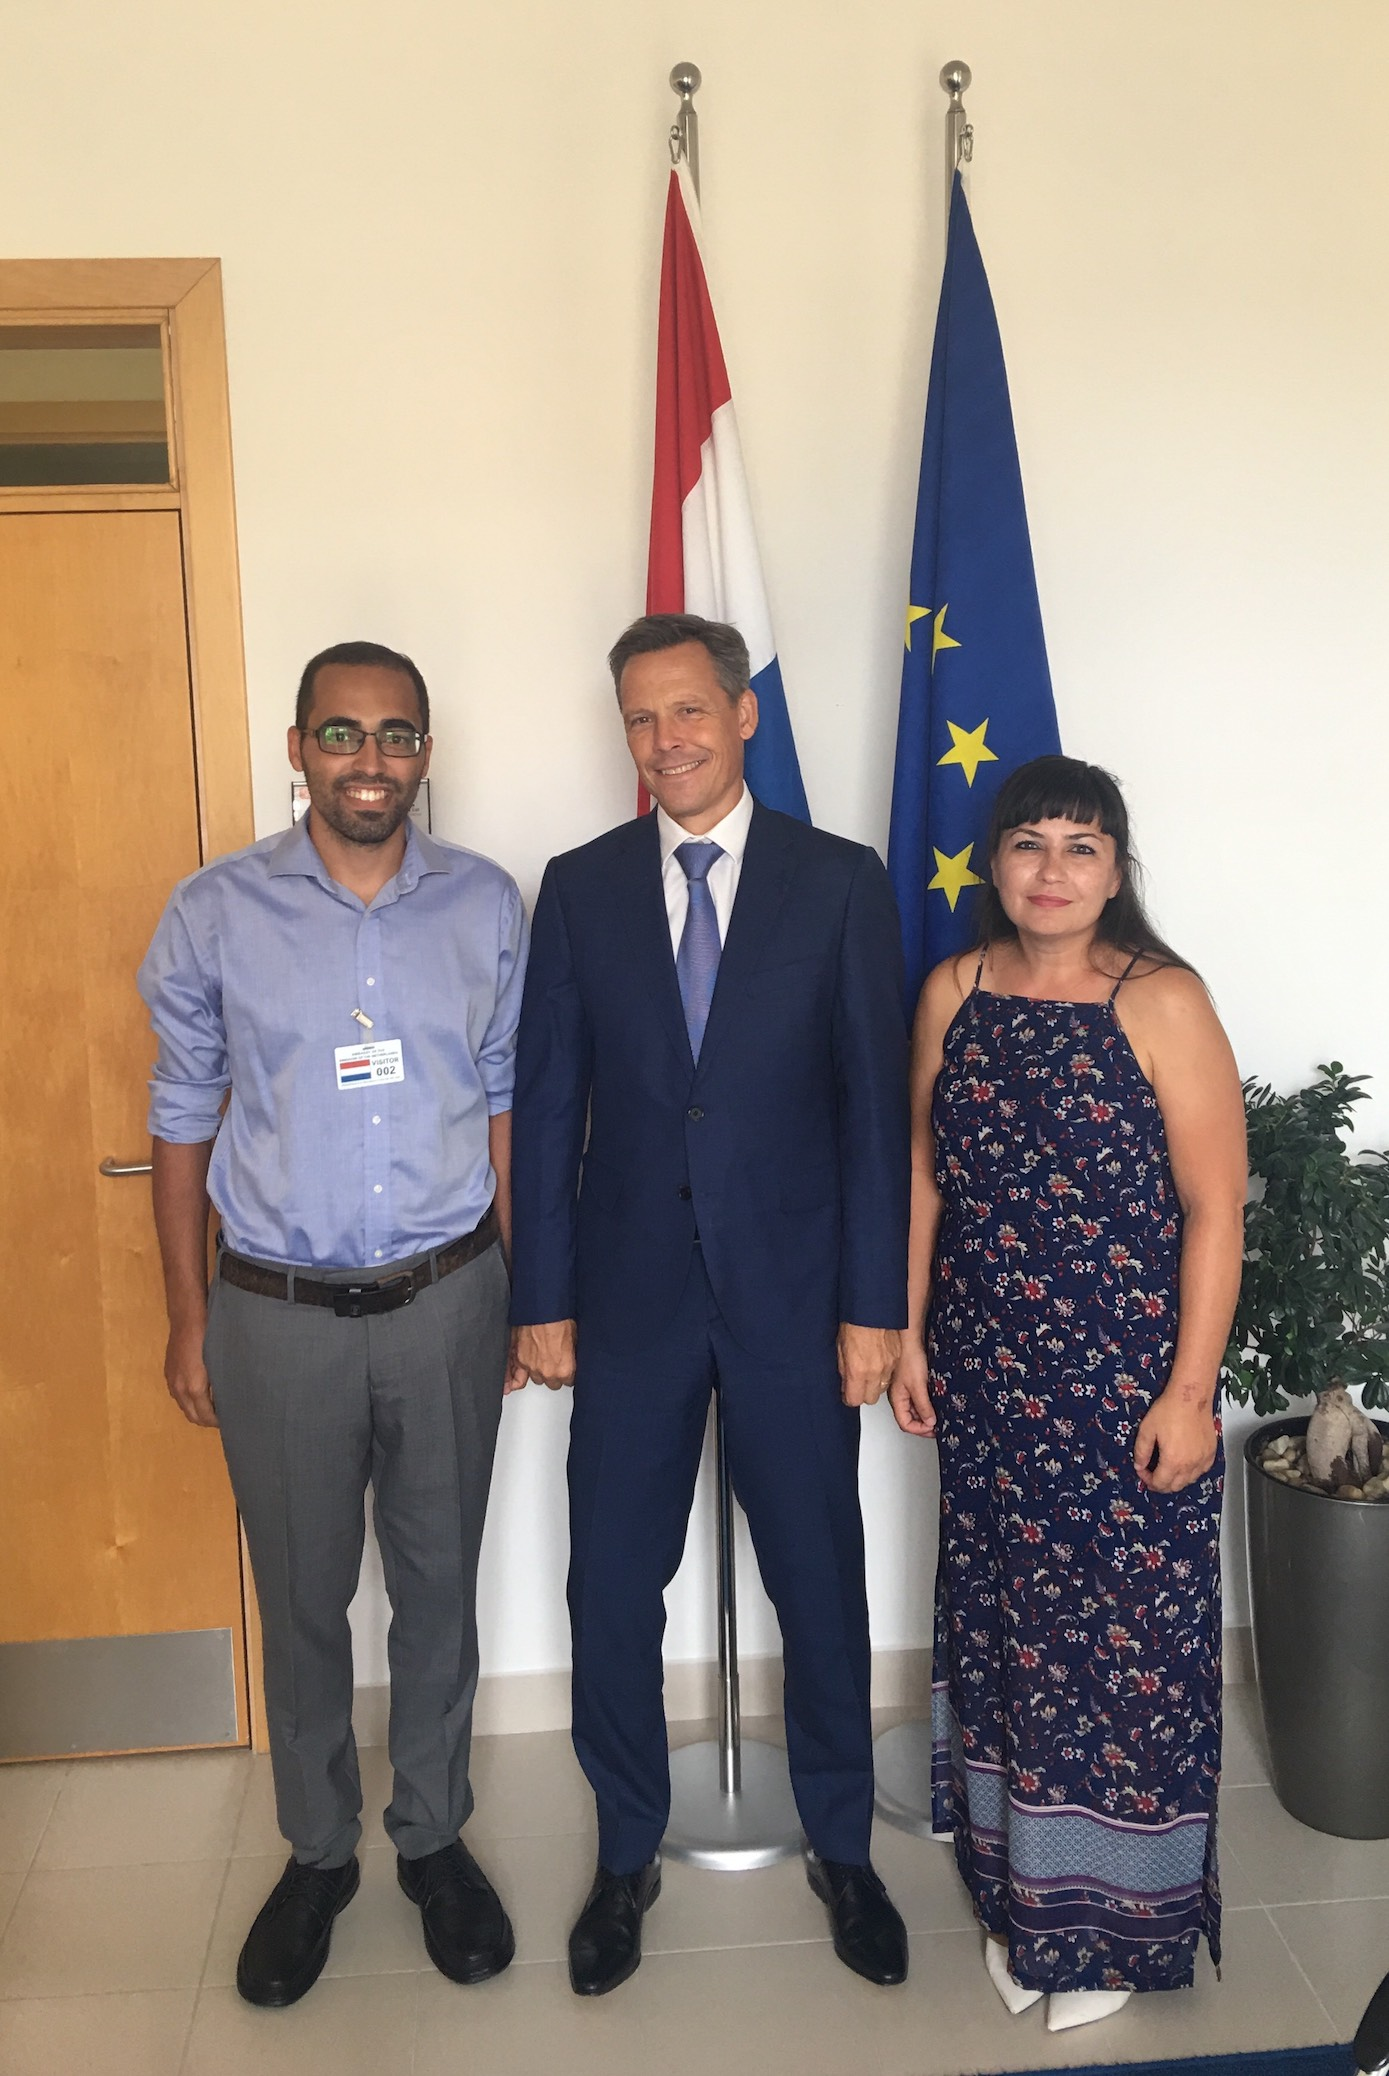 - The Bicycle Advocacy Group has been cordially invited by the Dutch Ambassador Frank Keurhorst for a meeting at the Dutch Embassy in Ta' Xbiex, on Thursday 13thof September, 2018. During this meeting, the need for better cycling infrastructure in Malta was discussed, together with suggestions on how the embassy can support the group in raising cycling popularity in Malta and in organising events to reach out to the Dutch and Maltese cycling community. The Dutch ambassador vouched his support on appealing to the Maltese authorities to facilitate cycling as a sustainable mode of transport in Malta.